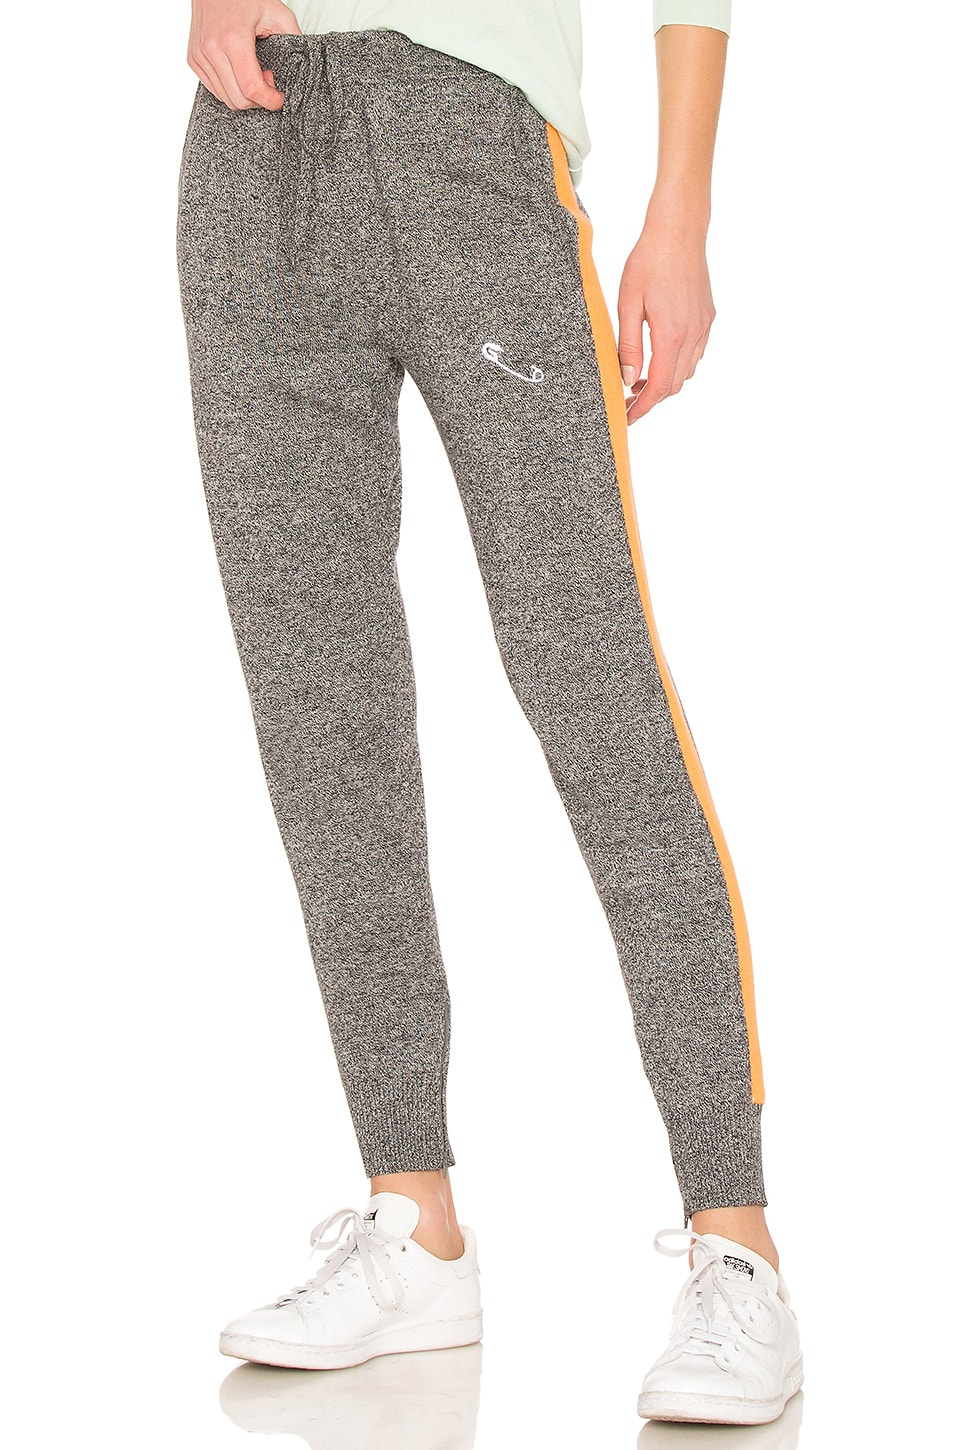 Safety Pin Embroidery Sweatpant